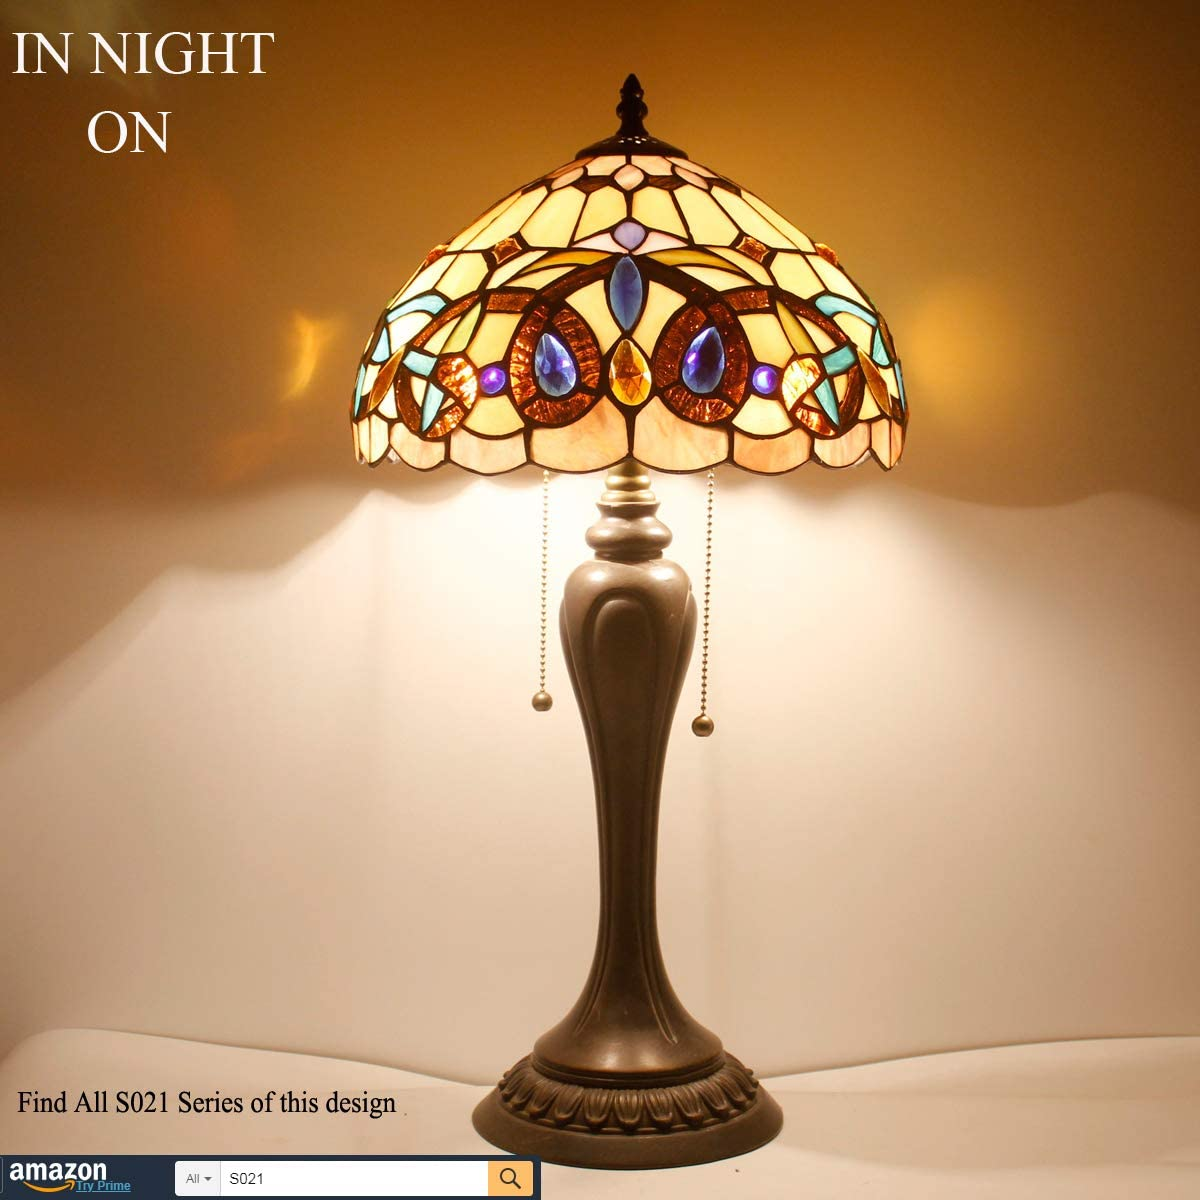 Tiffany Style Table Lamps Wide 12 Tall 22 Inch Serenity Victorian Stained Glass Lamp Shade 2 Bulb Desk Antique Night Light Resin Base for Living Room Bedroom Bedside End S021 WERFACTORY